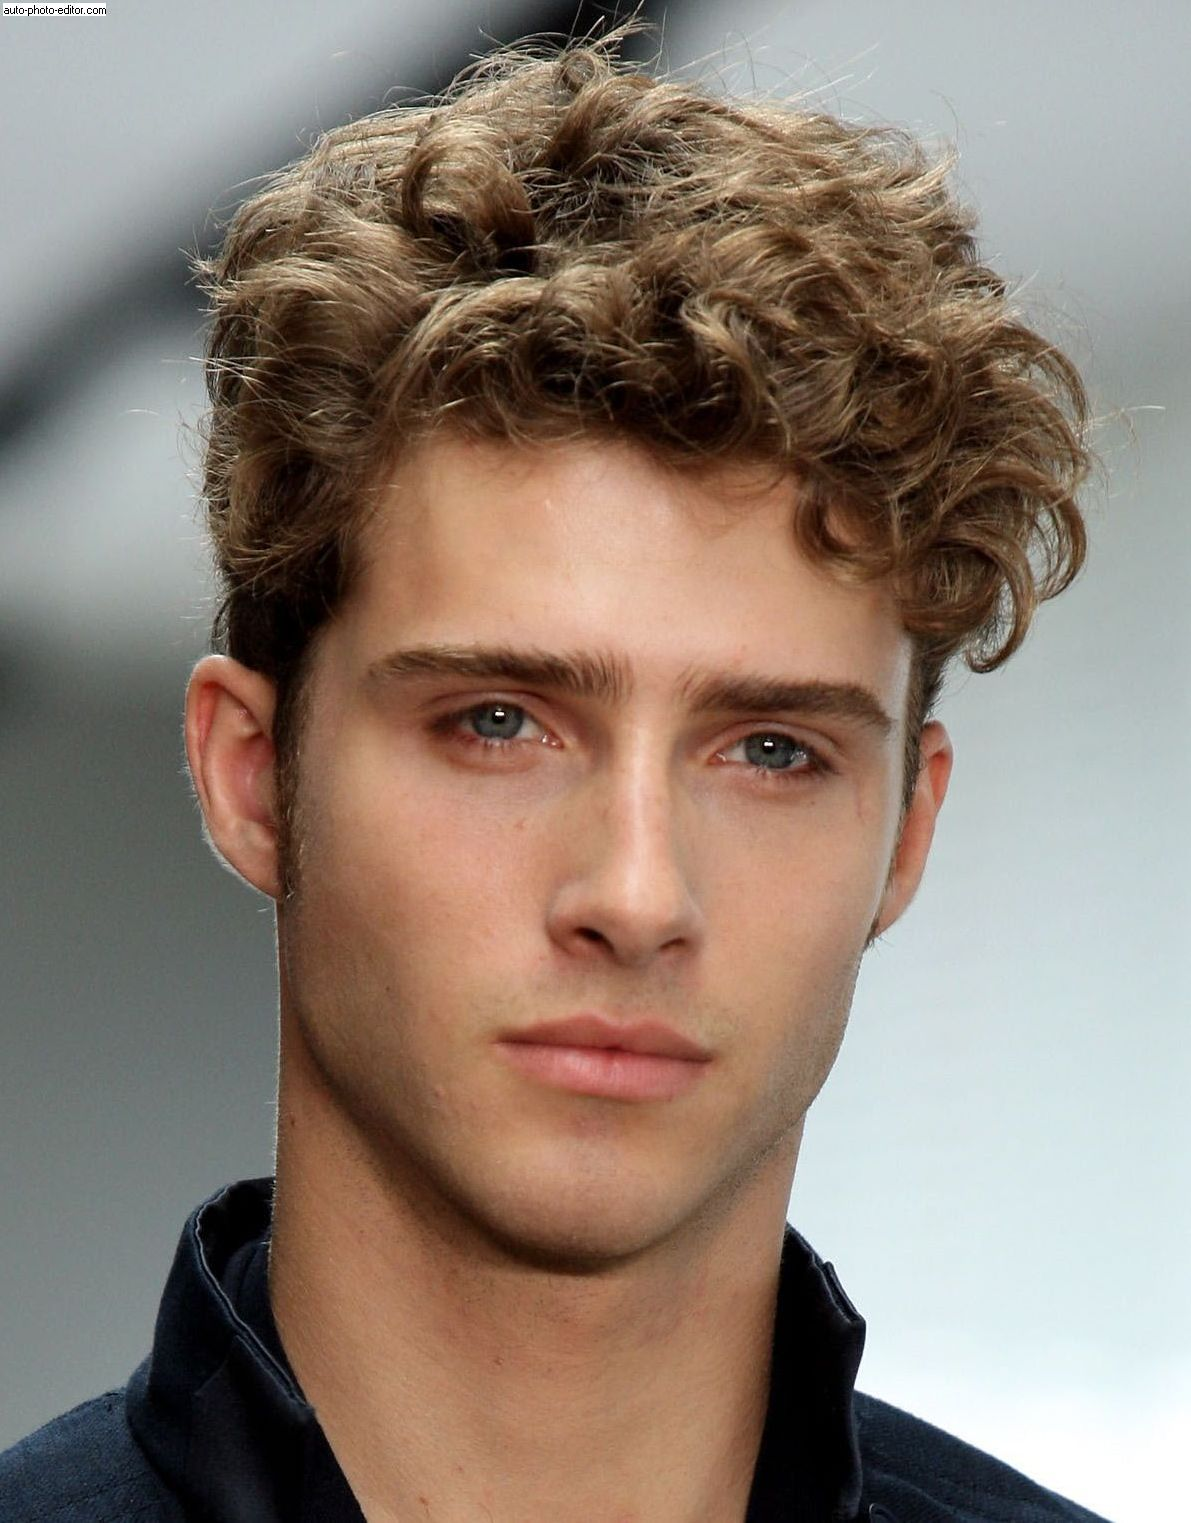 curly hairstyles for men | moda para caballeros- fashion for men